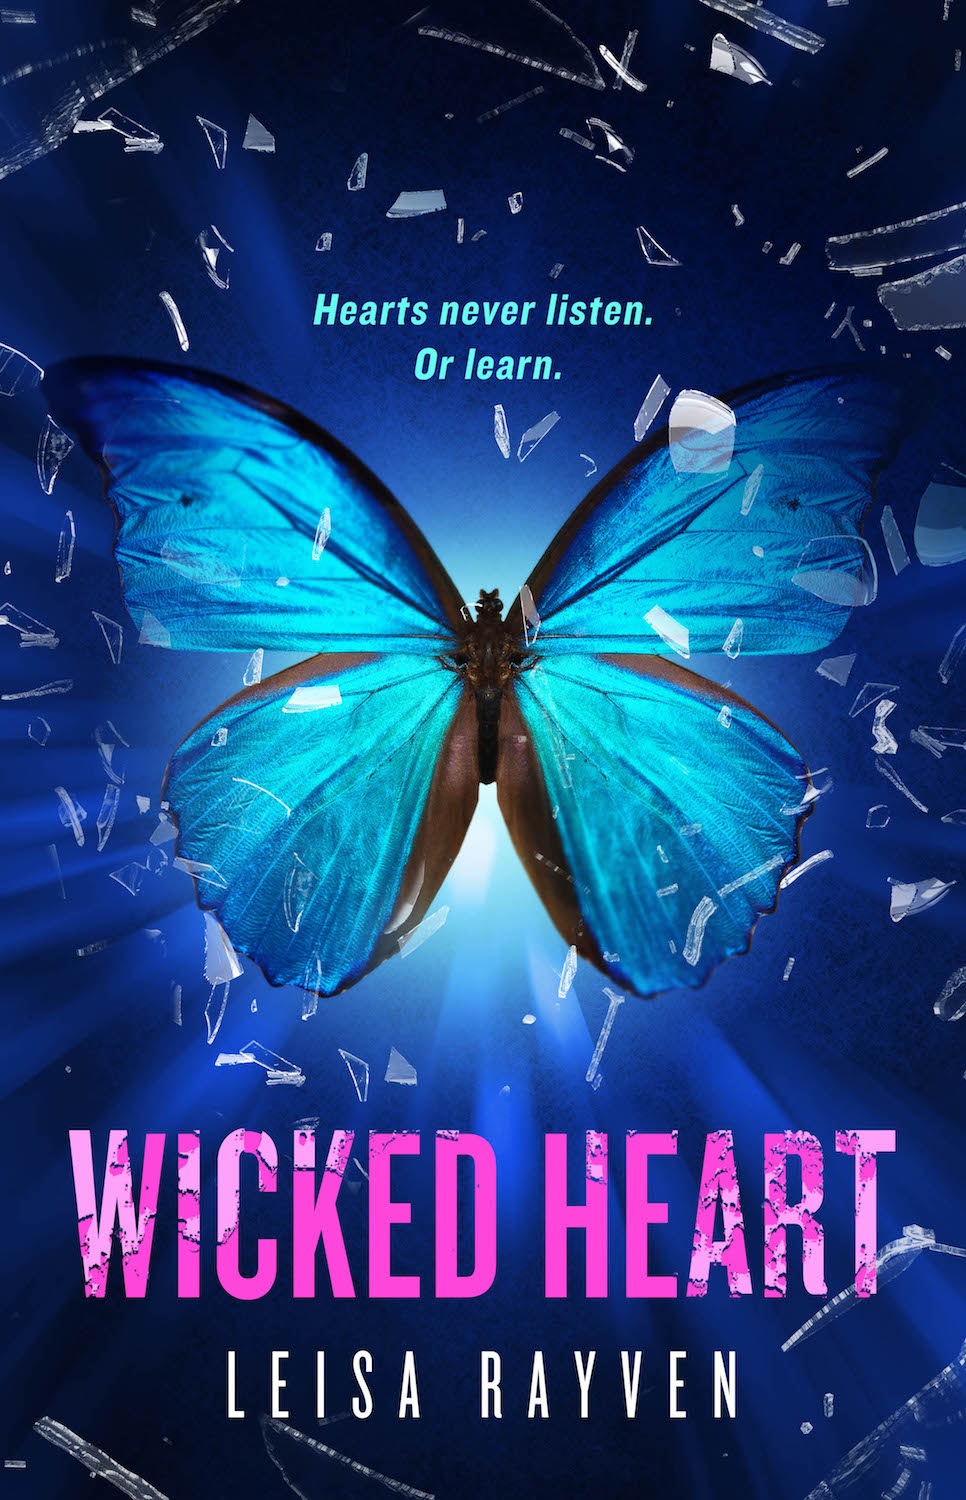 Wicked Libro Exclusive Excerpt Wicked Heart By Leisa Rayven Natasha Is A